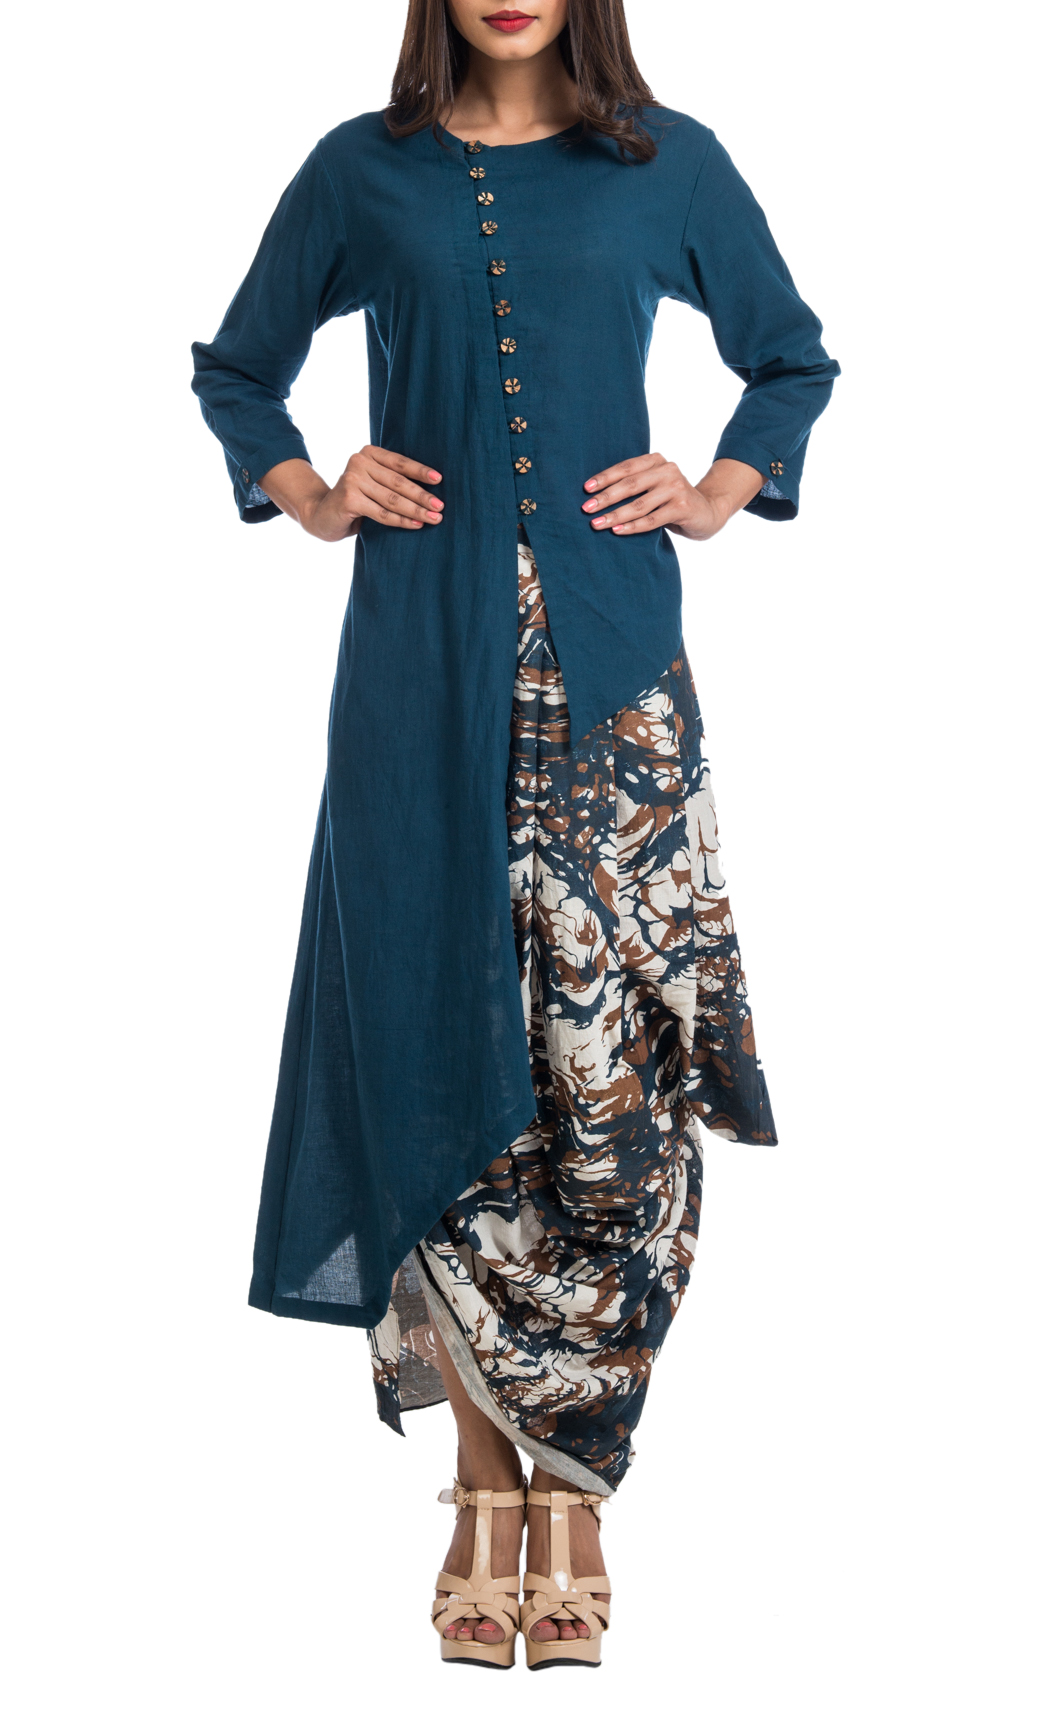 Teal Asymmetrical Shirt and Cream Printed Draped Dhoti Skirt - Shop Online